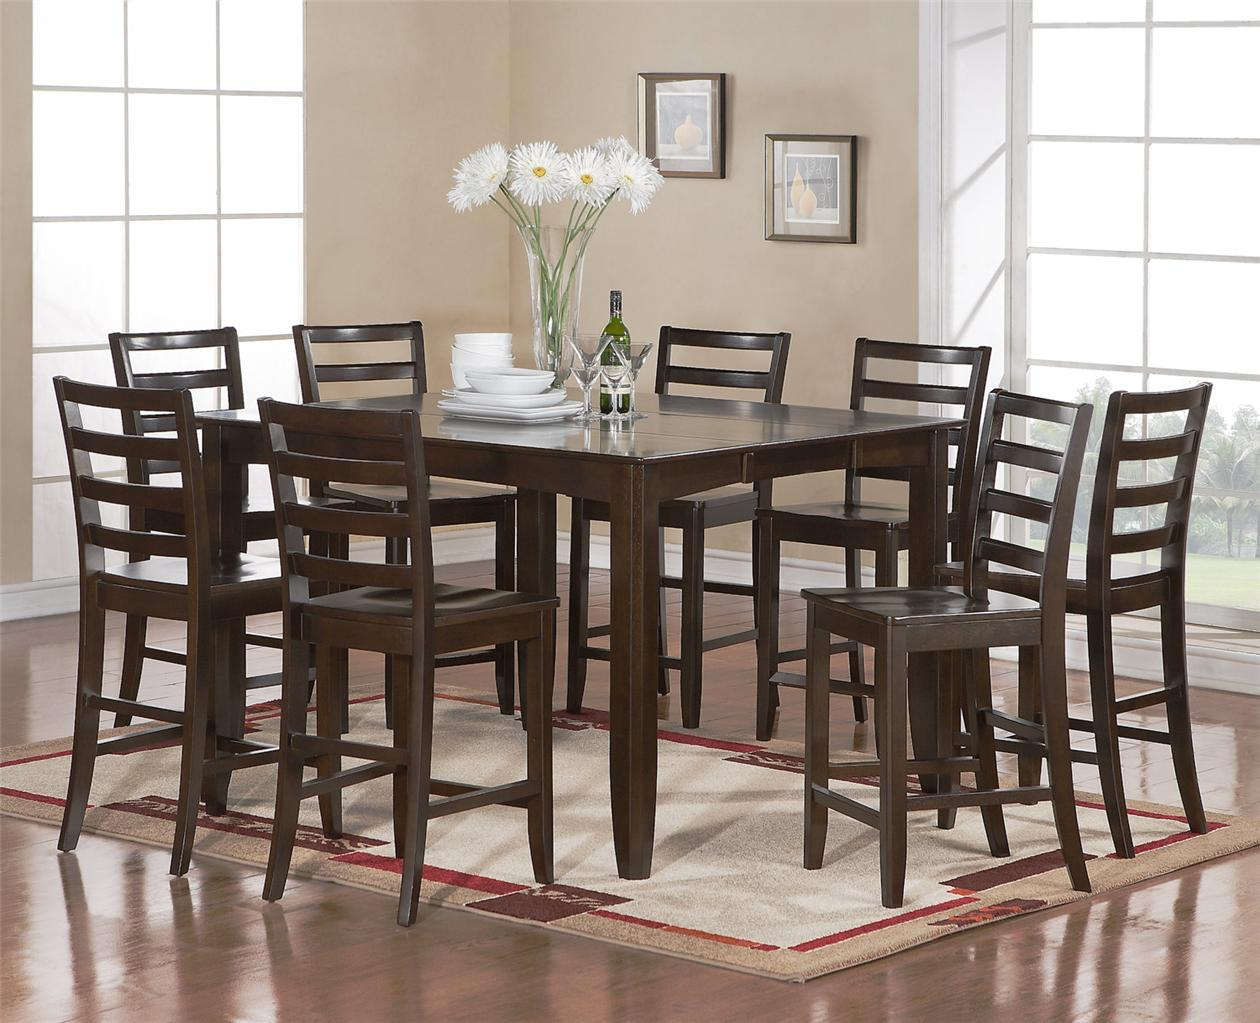 9 pc square counter height dining room table with 8 wood seat chairs cappuccino ebay. Black Bedroom Furniture Sets. Home Design Ideas